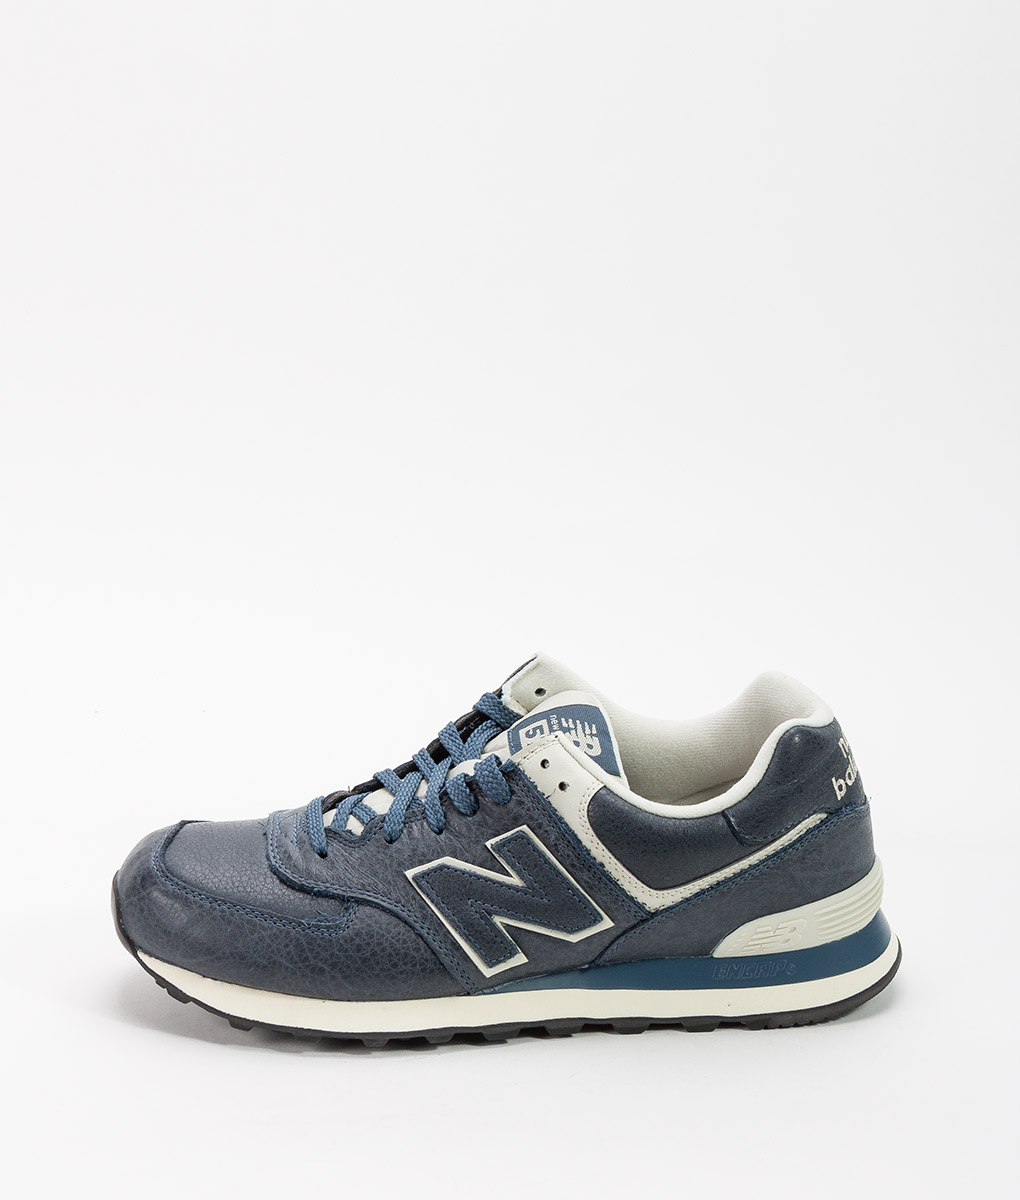 New Balance 574 Leather Stone Blue